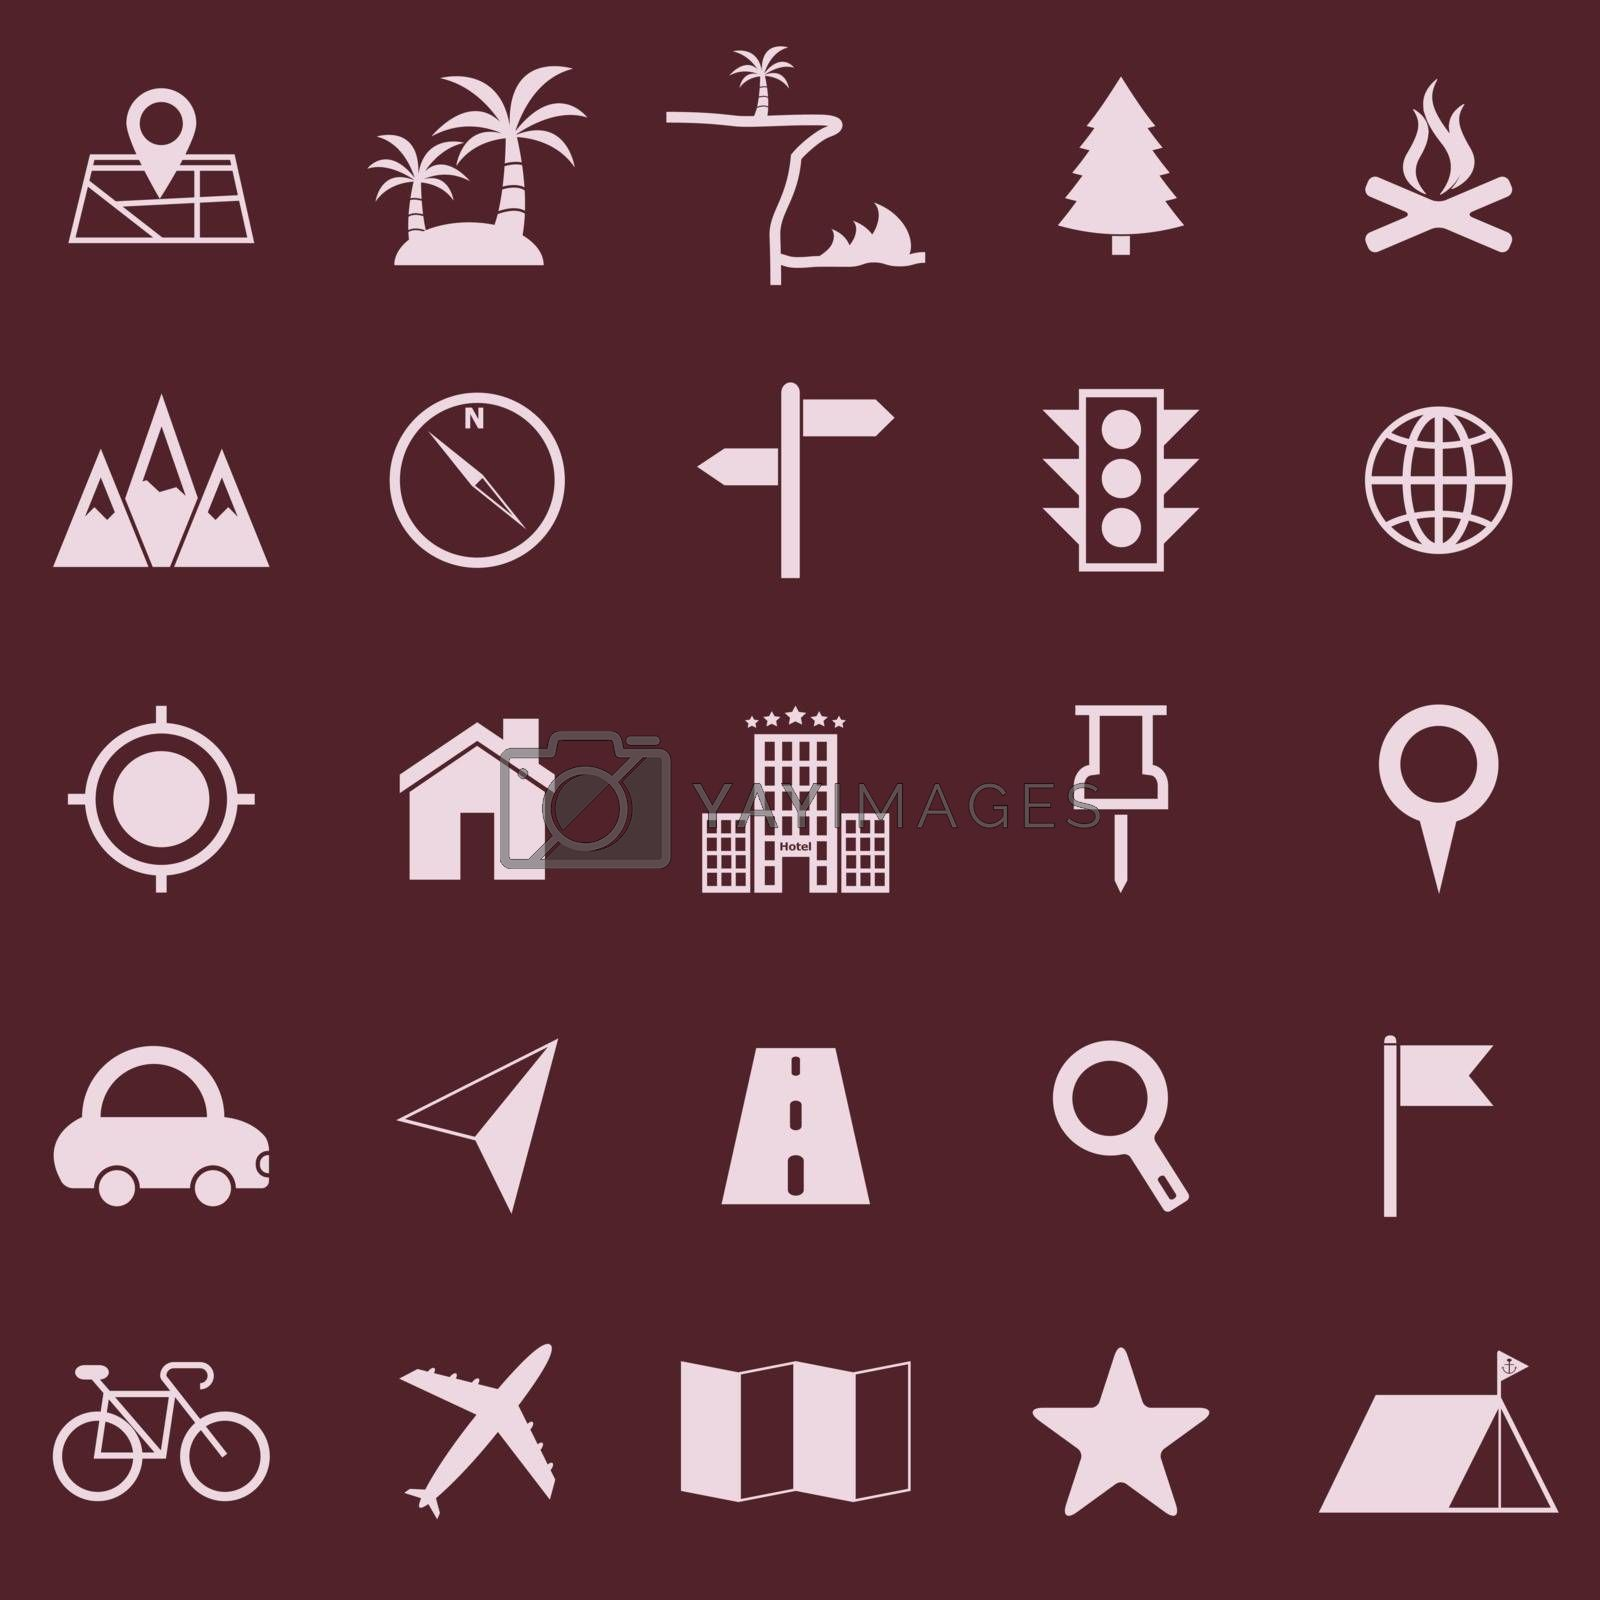 Location color icons on red background, stock vector